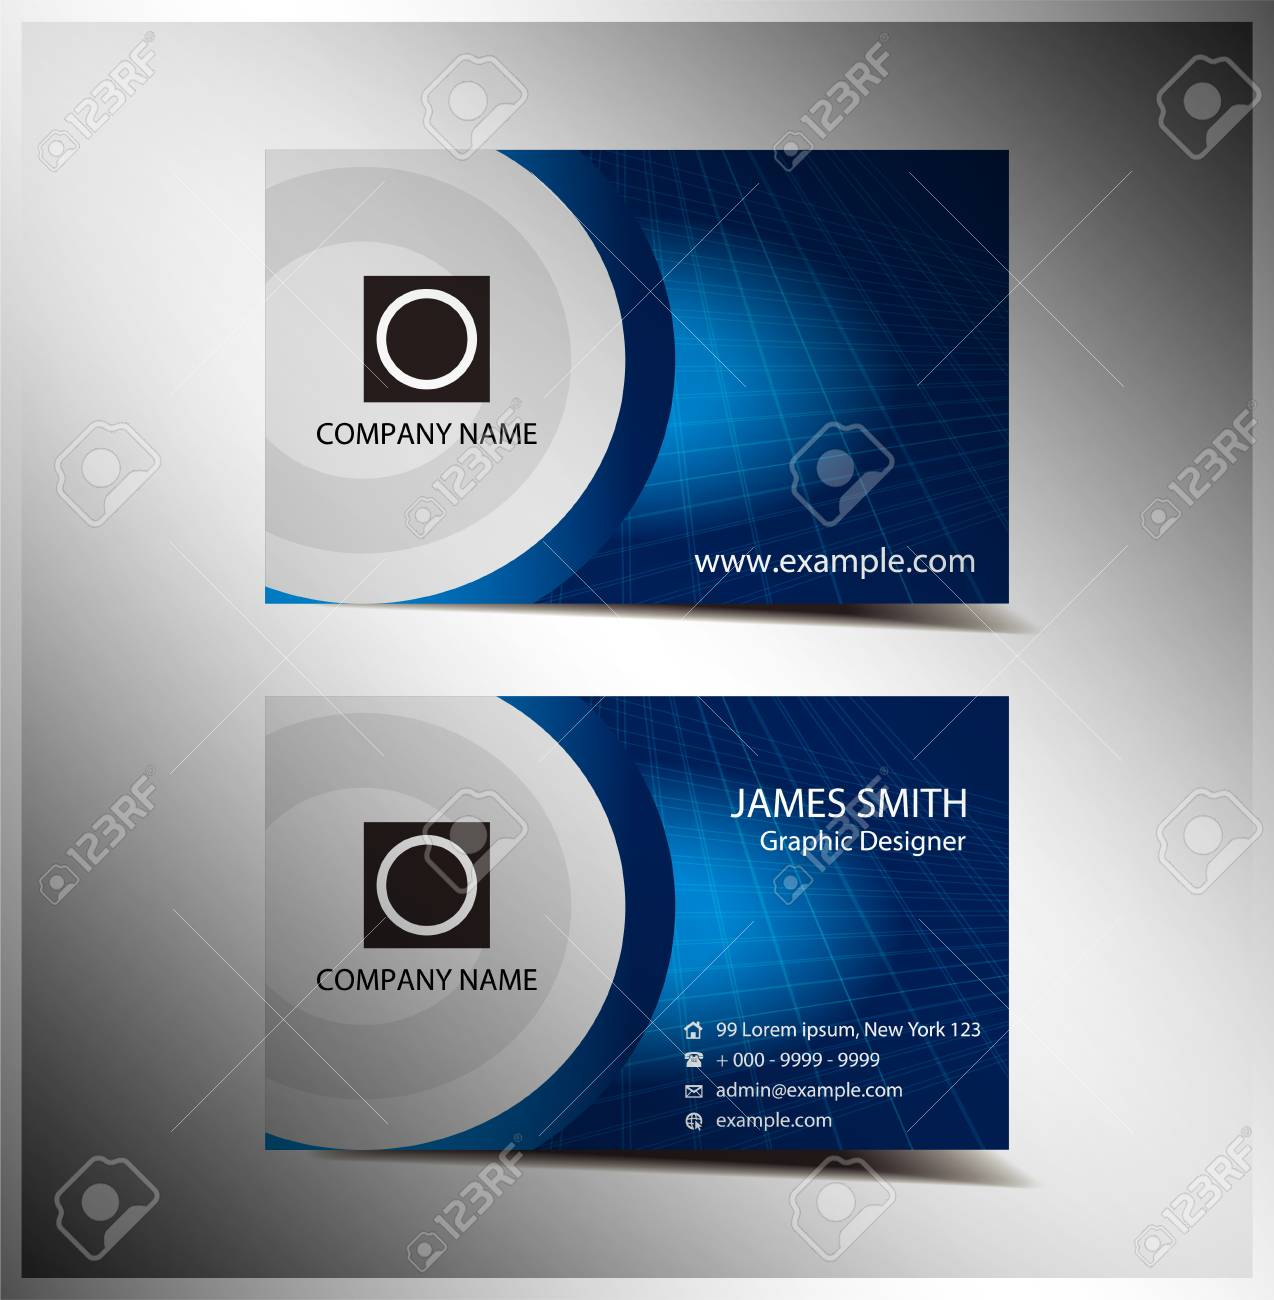 Professional And Designer Business Card Or Visiting Card Royalty ...